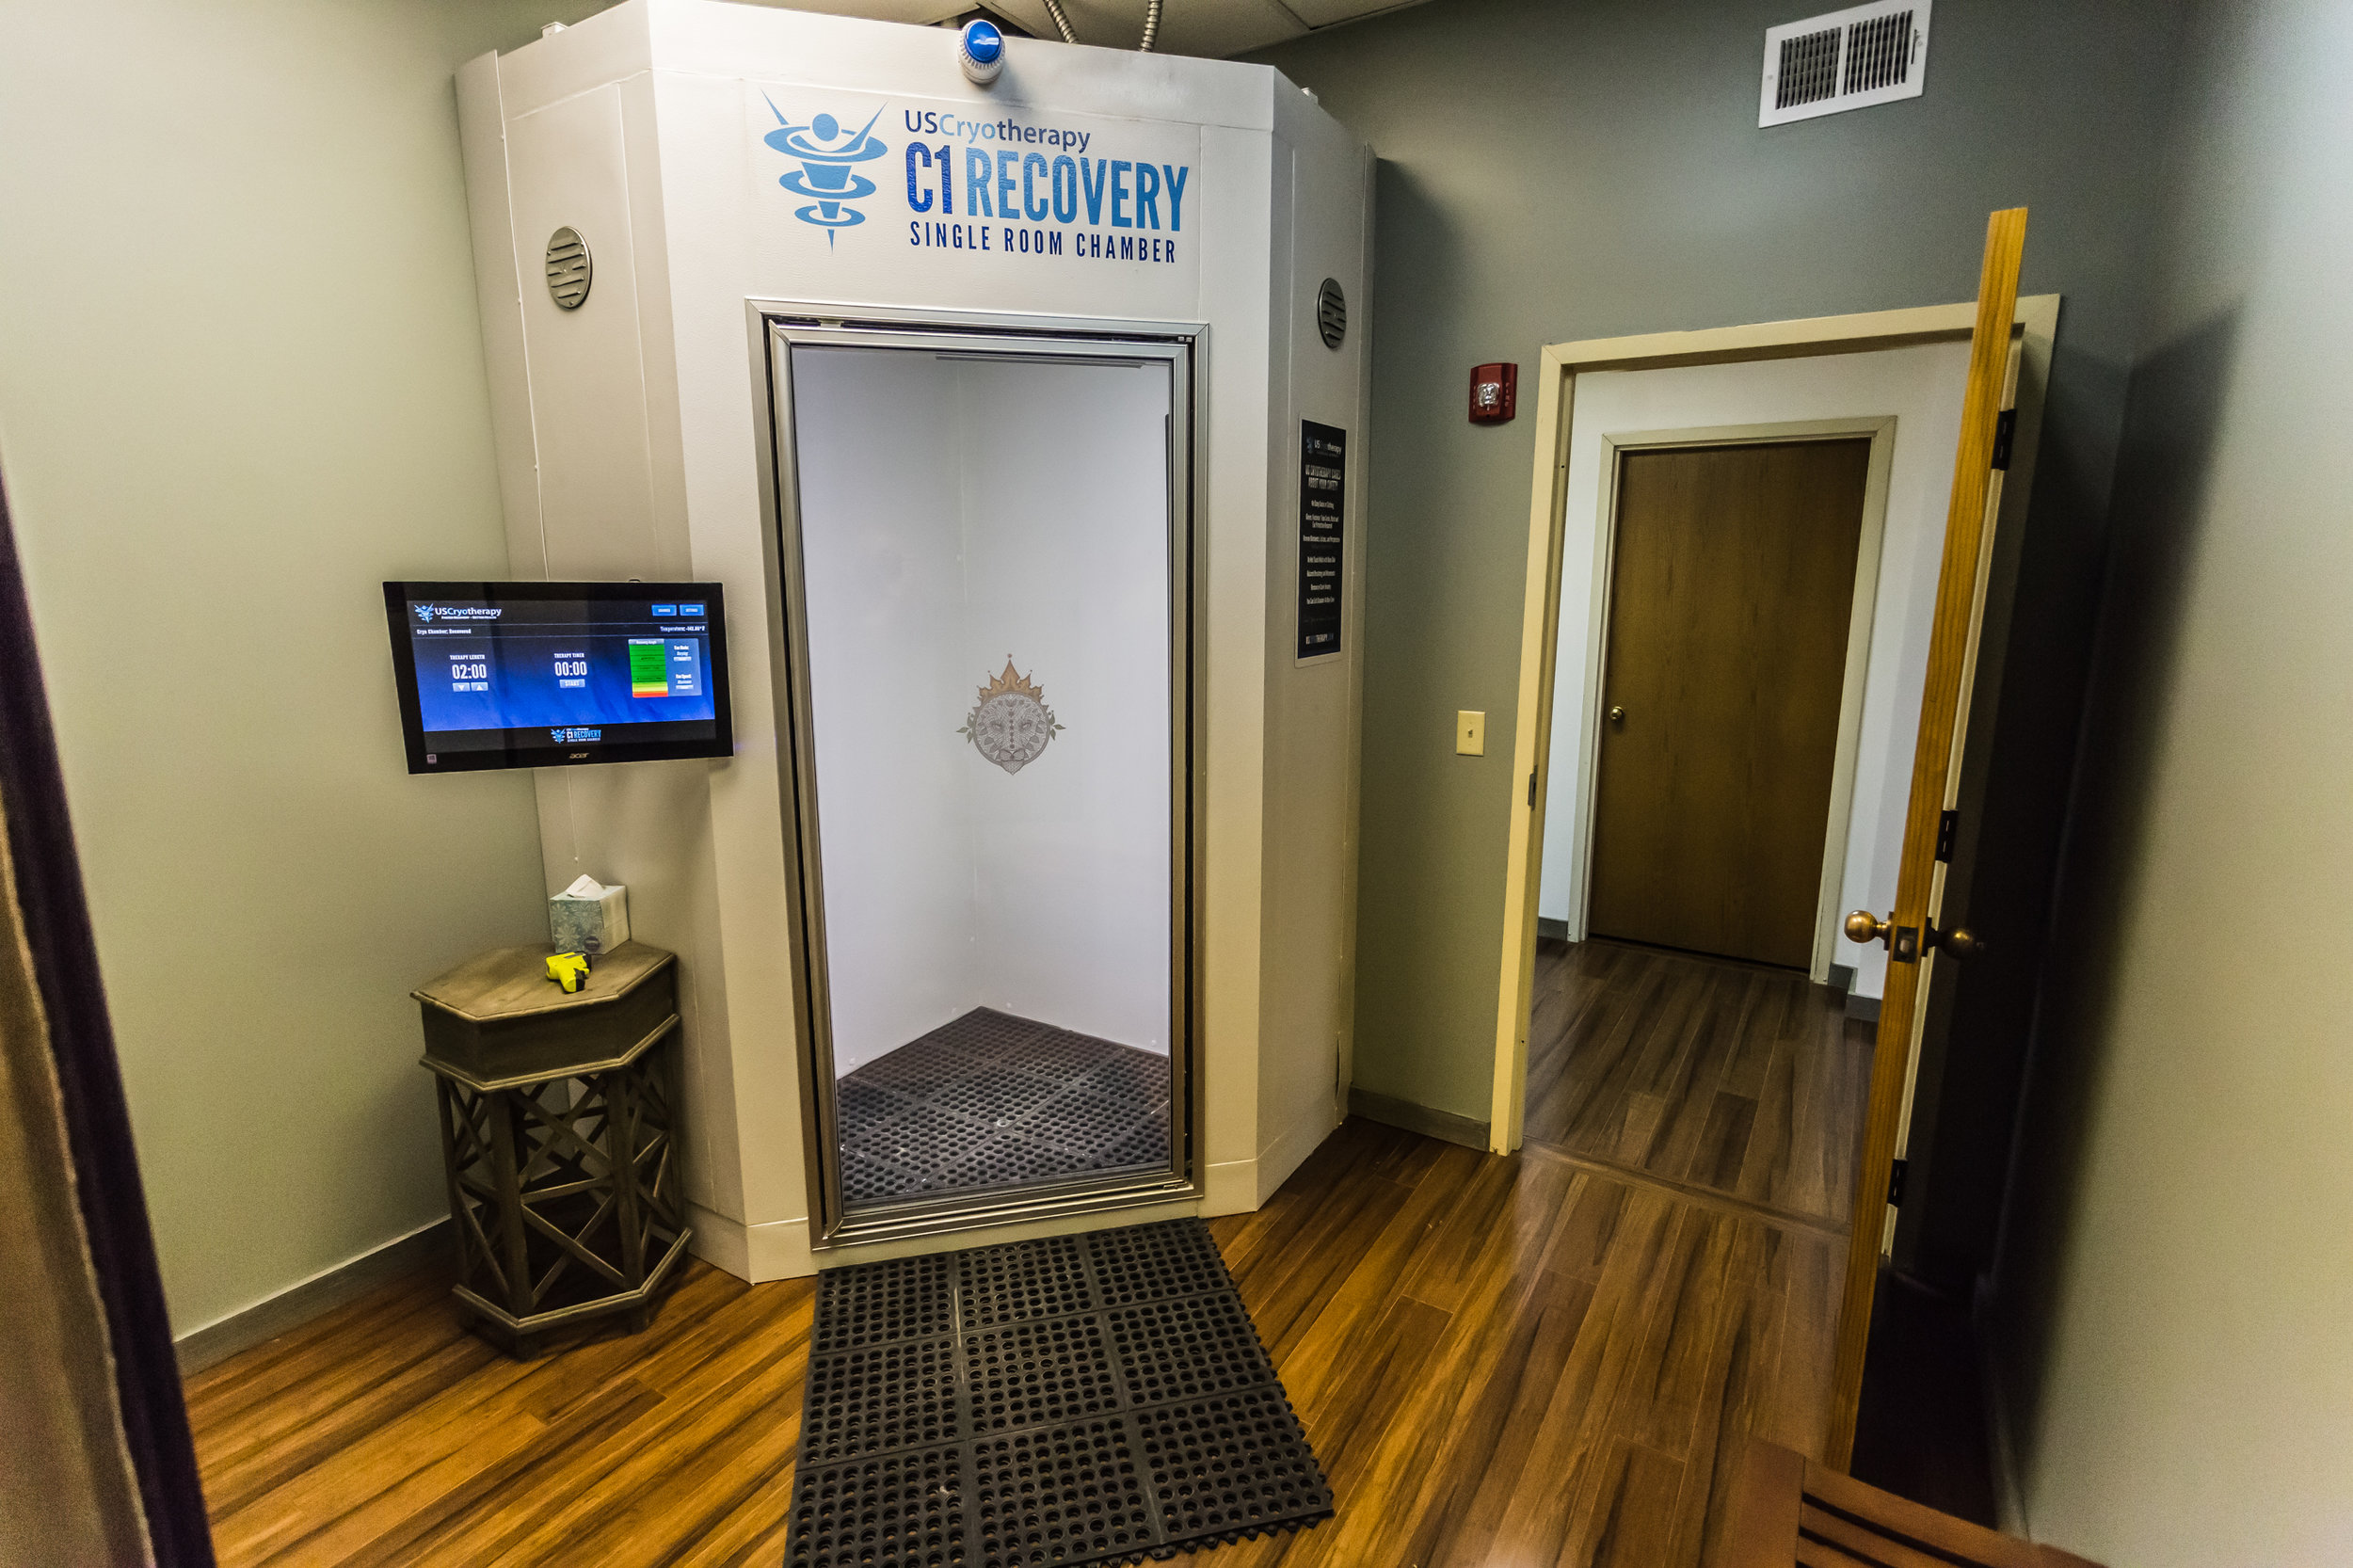 Our chamber is the only one of its kind in the Midwest that is available to the general public! Our chamber does not use Nitrogen as a basis to chill the air, therefore is completely safe and allows the client to fully submerge into the chamber.